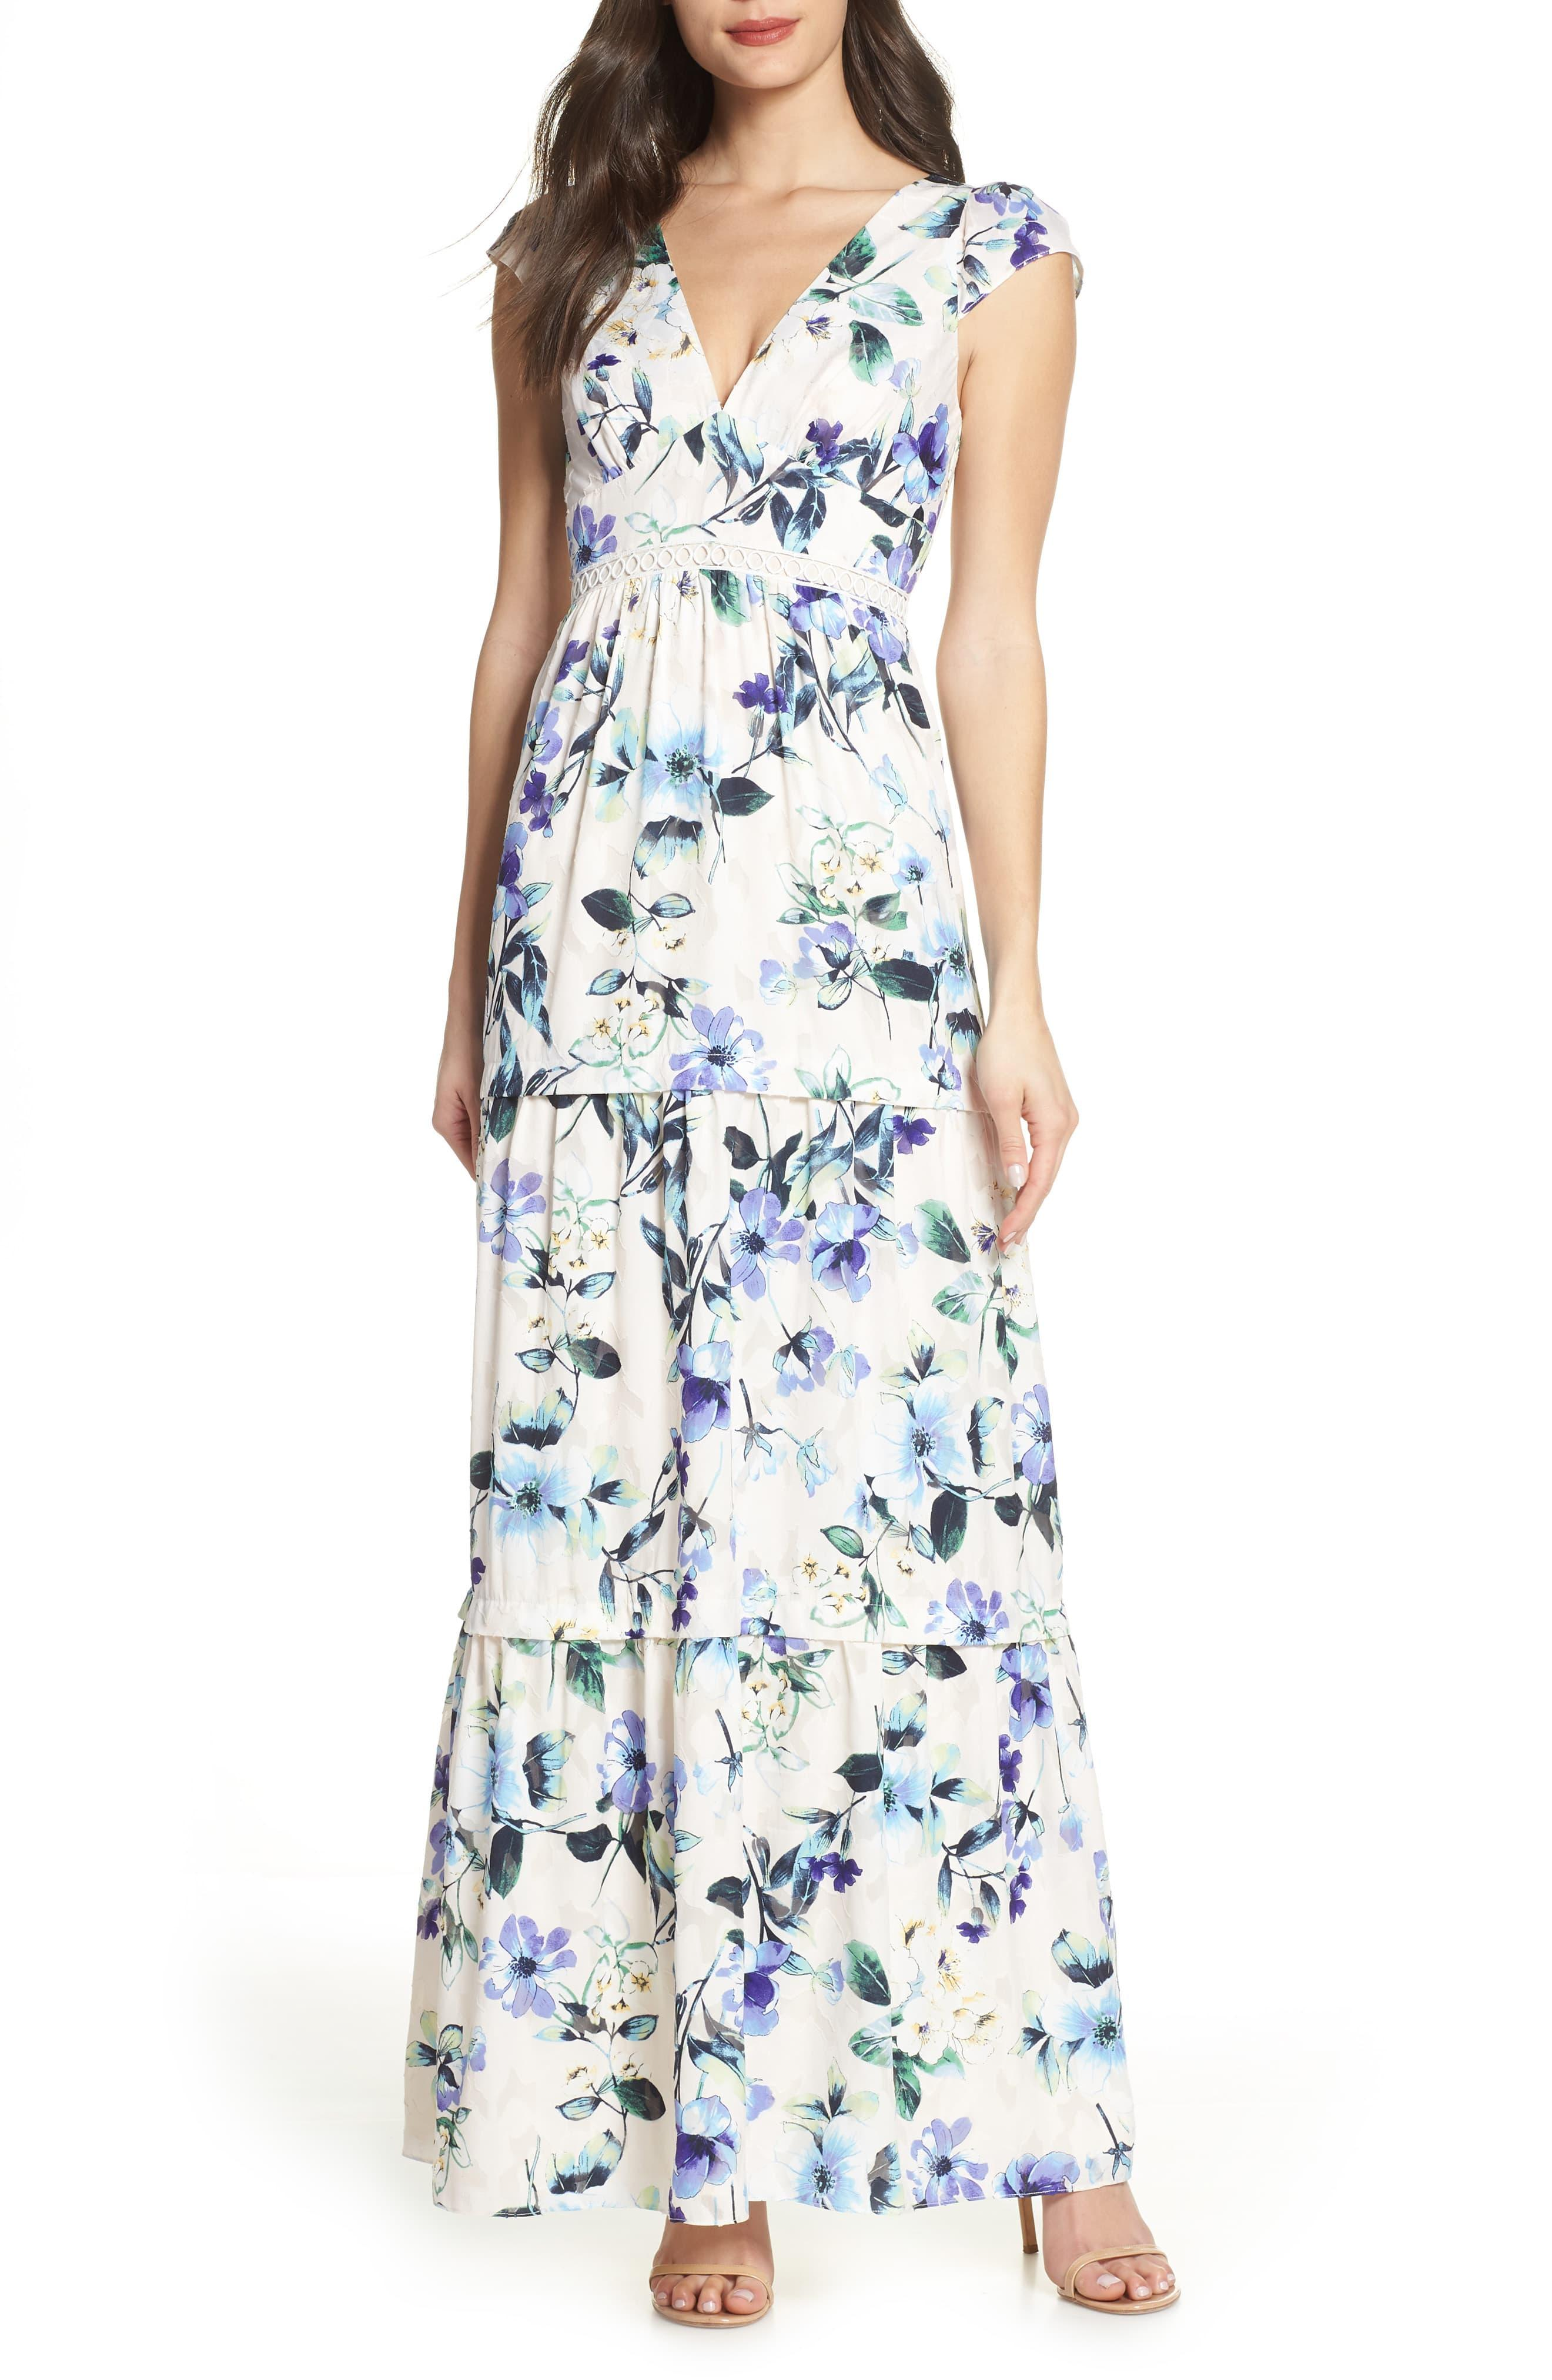 Blue In Lyst Dress Foxiedox Maxi Ressie N0Onmvw8